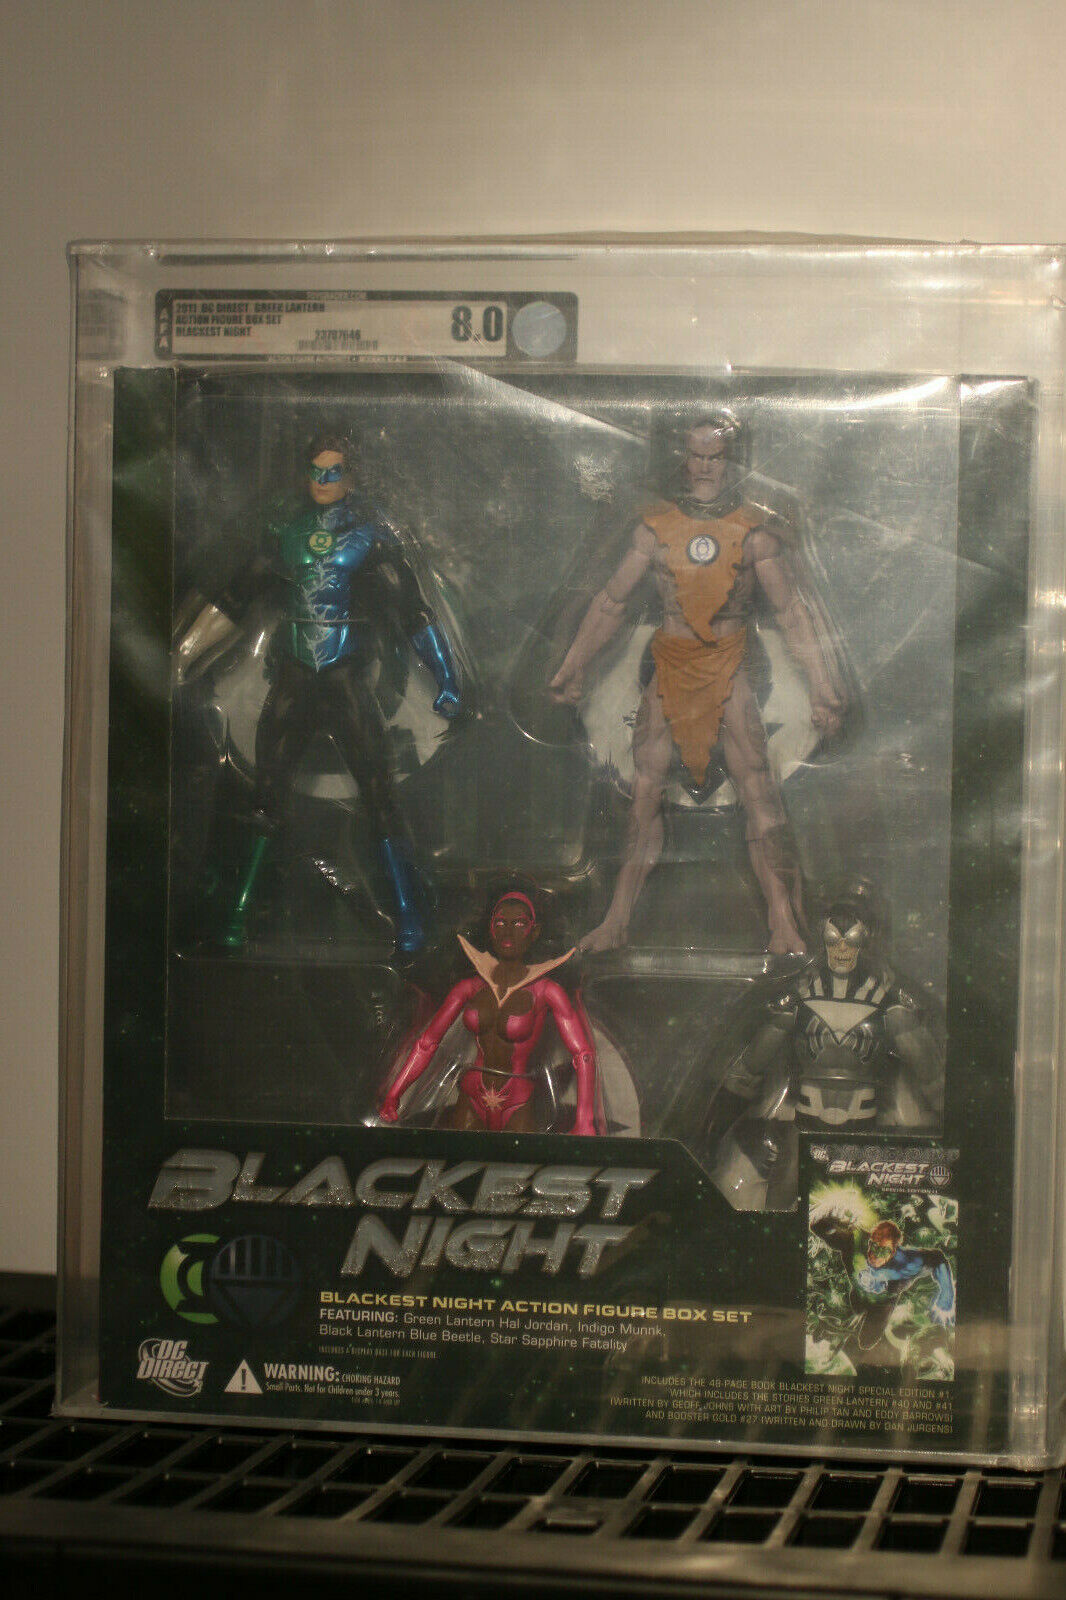 DC Direct Linterna verde negroest Night en Caja Set Zafiro EsCocheabajo Azul AFA 8.0